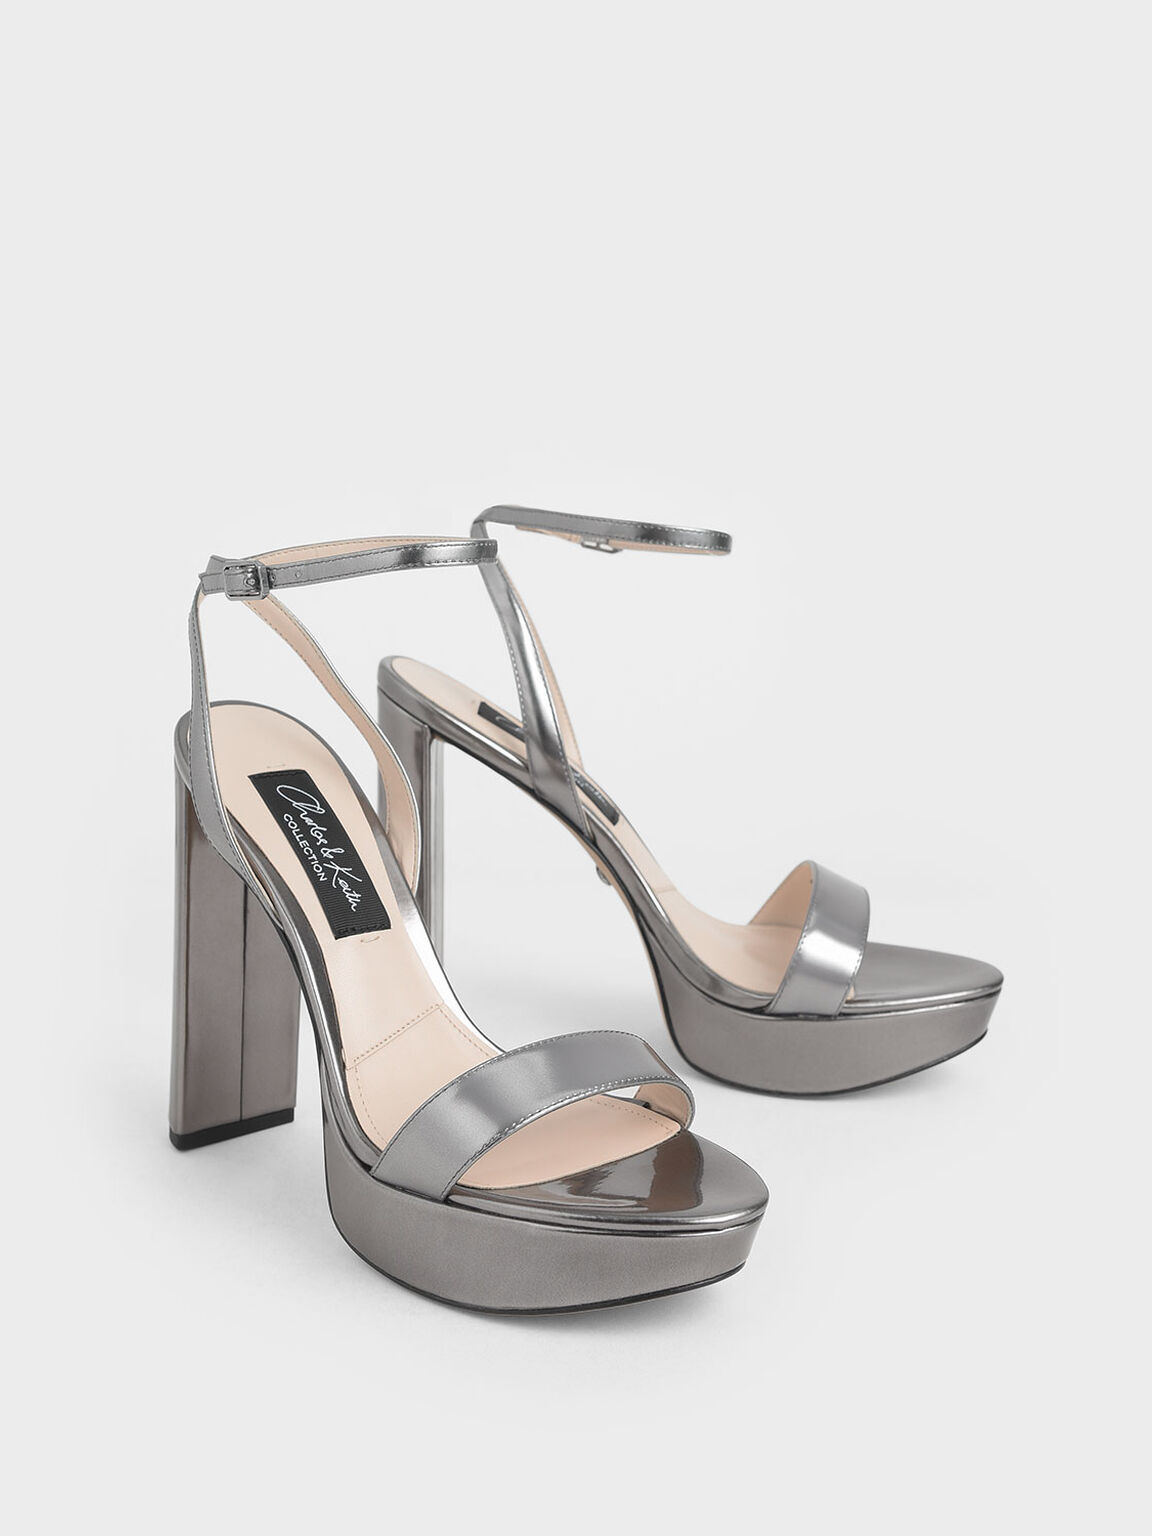 Mirror Metallic Leather Platform Heels, Silver, hi-res